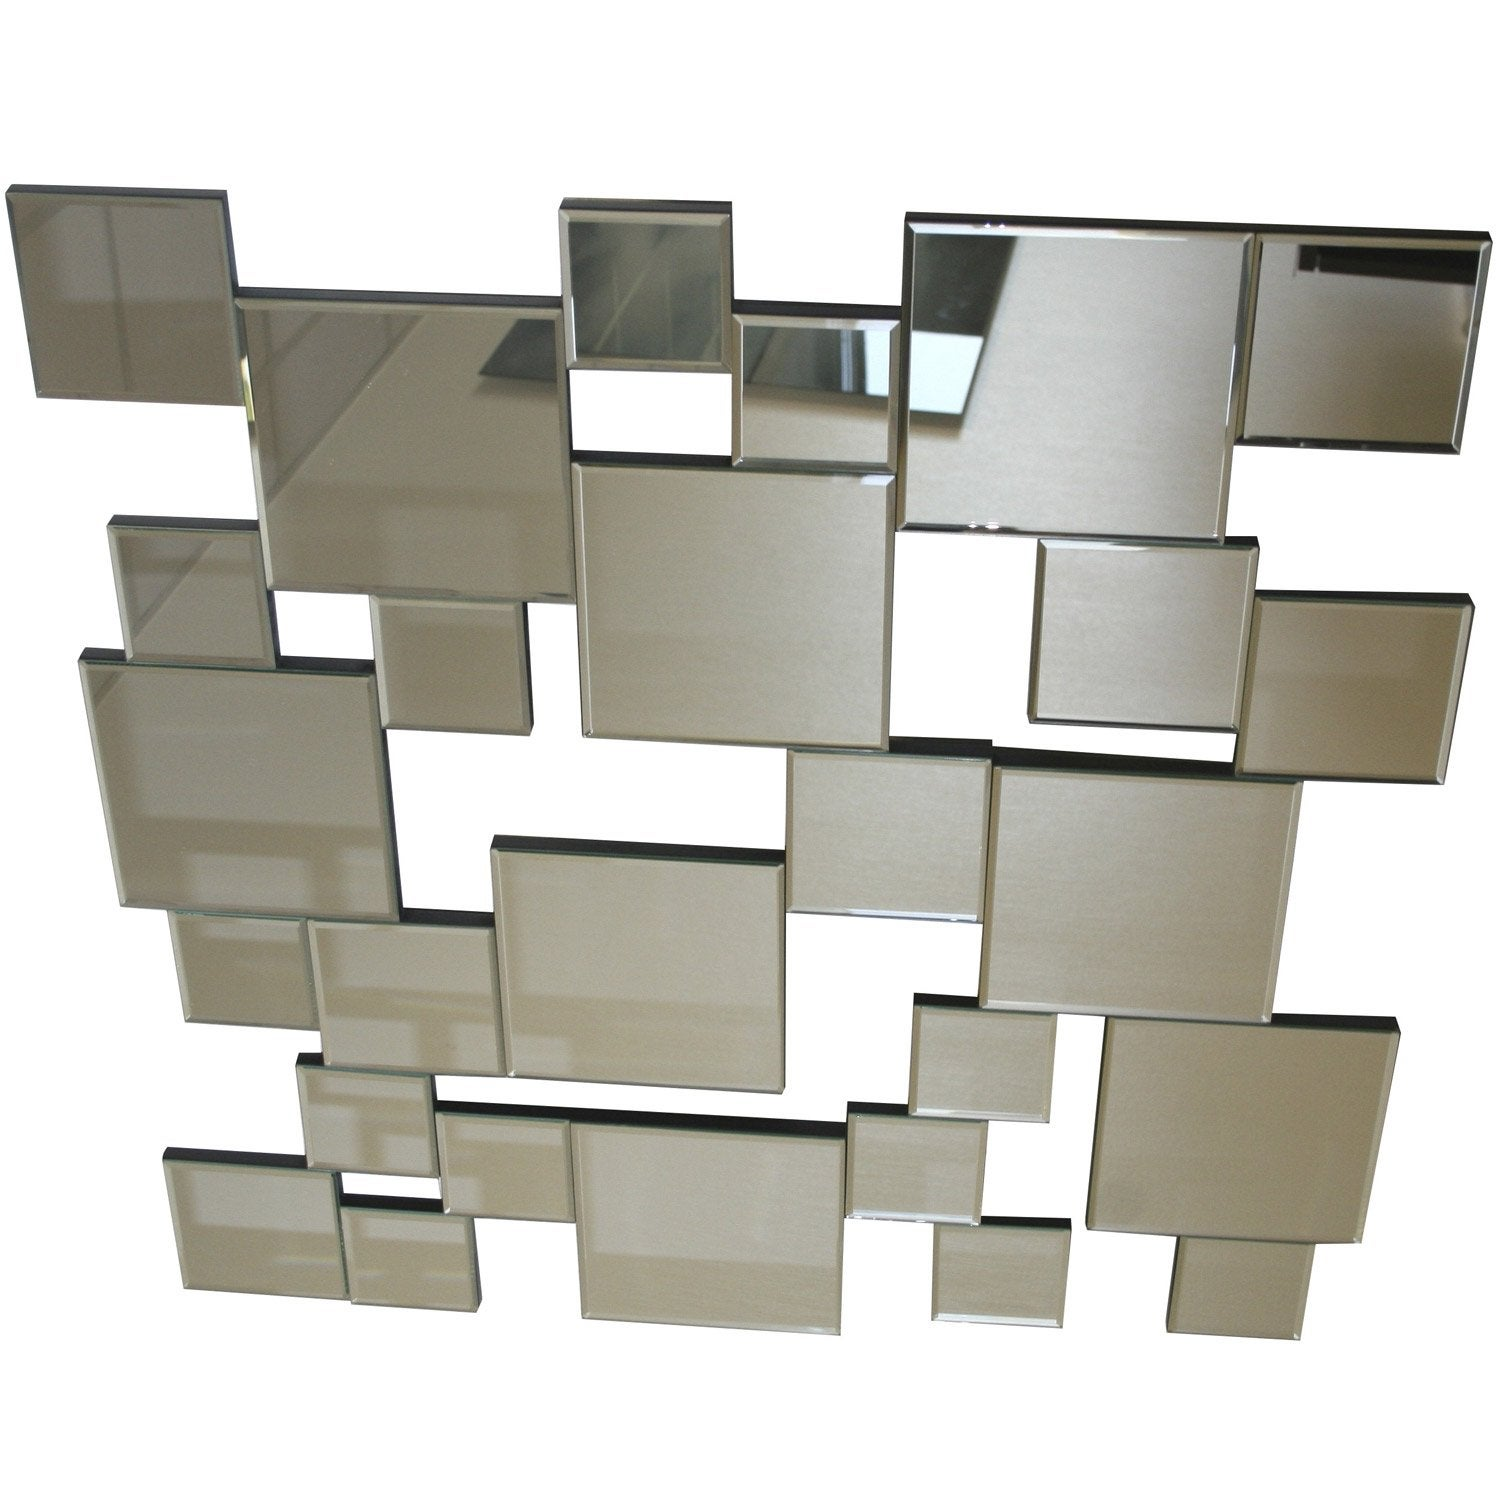 Miroir a coller leroy merlin maison design for Carrelage 80x80 leroy merlin